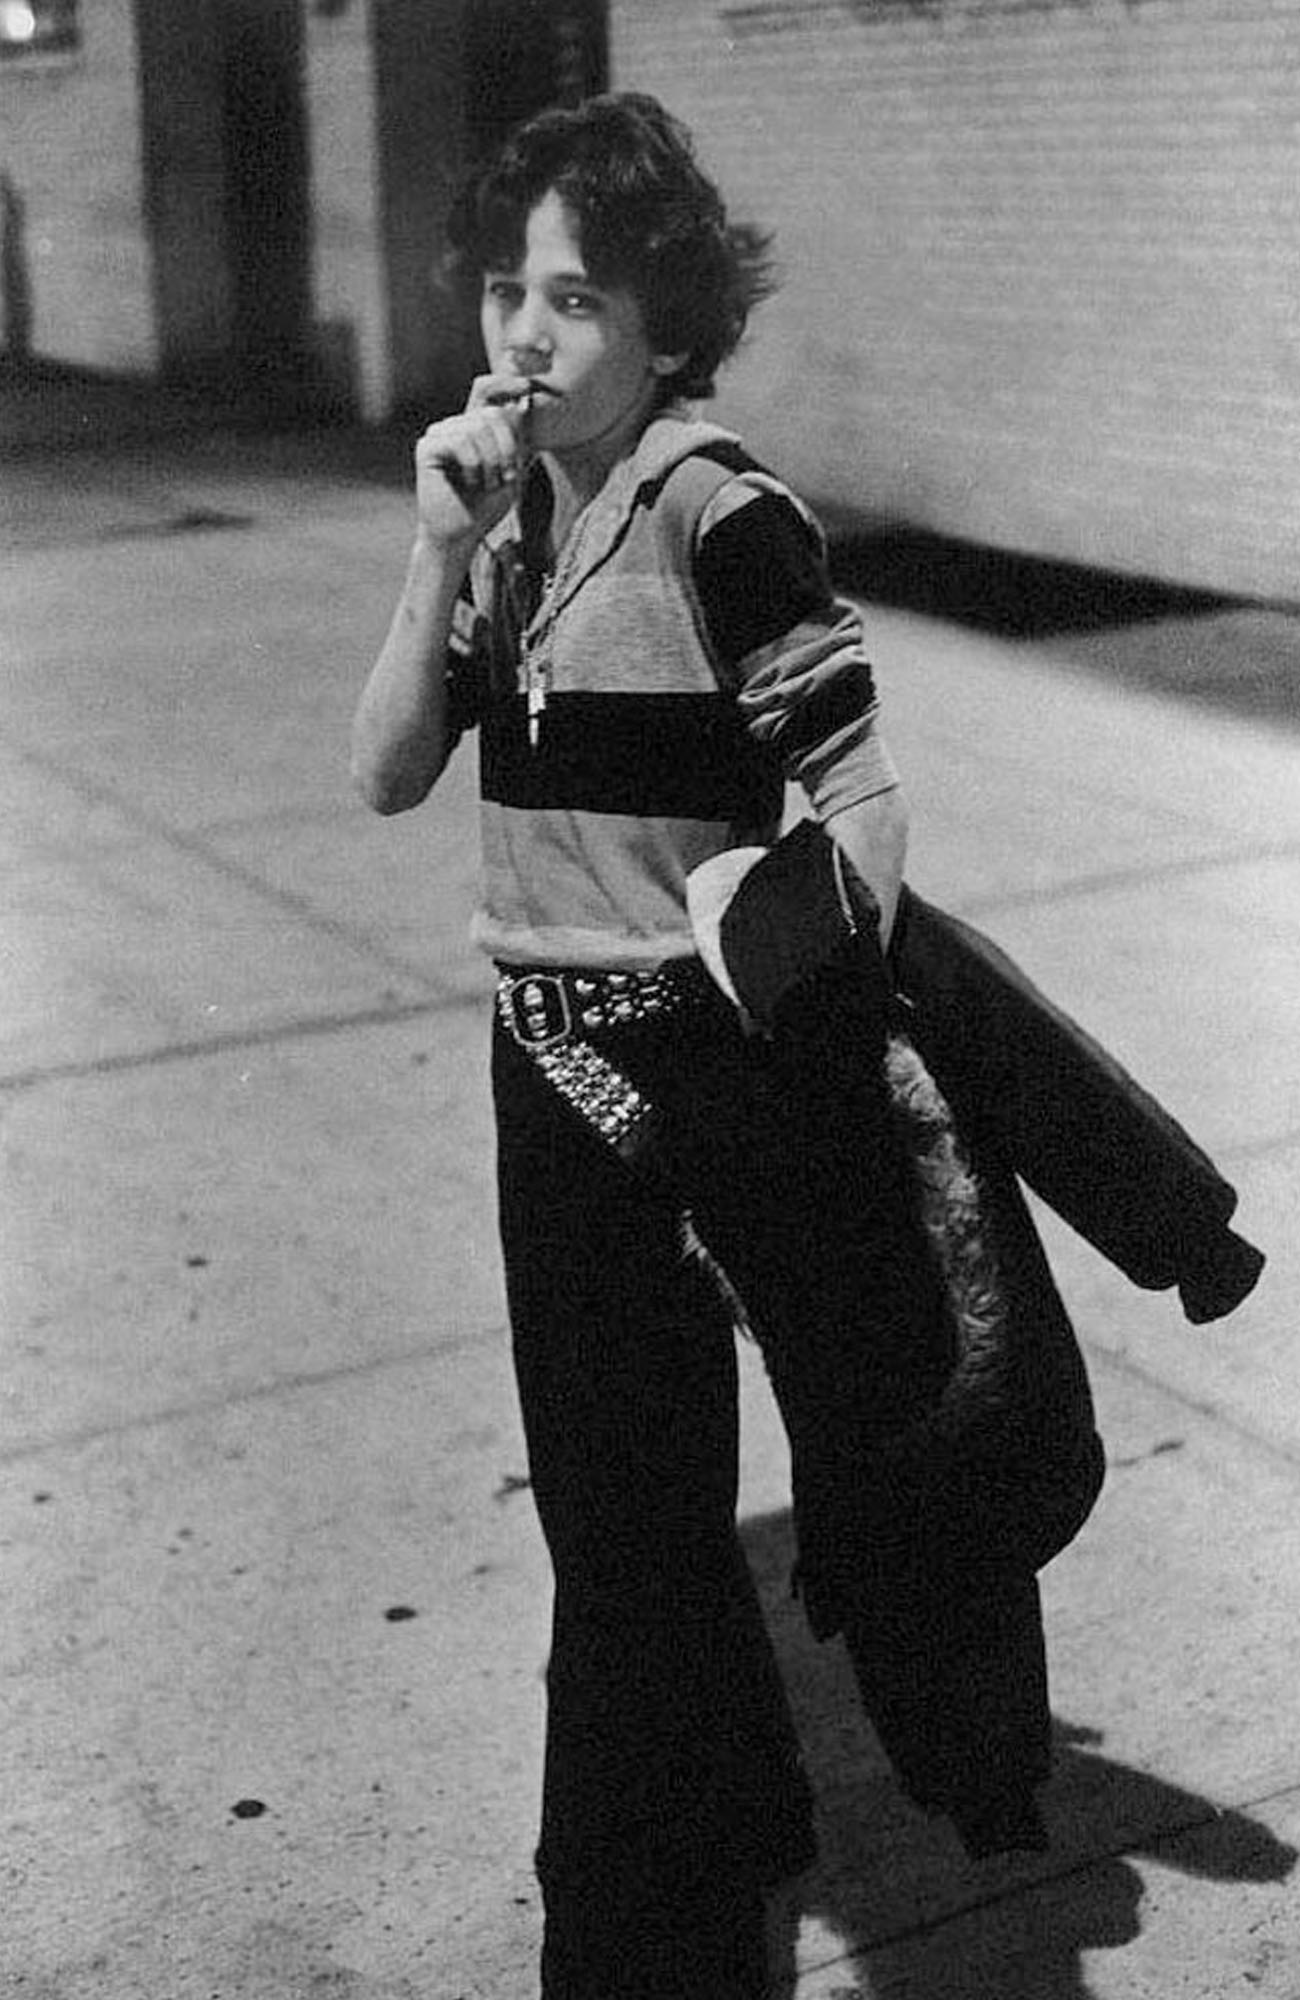 picture of a boy smoking a cigarette